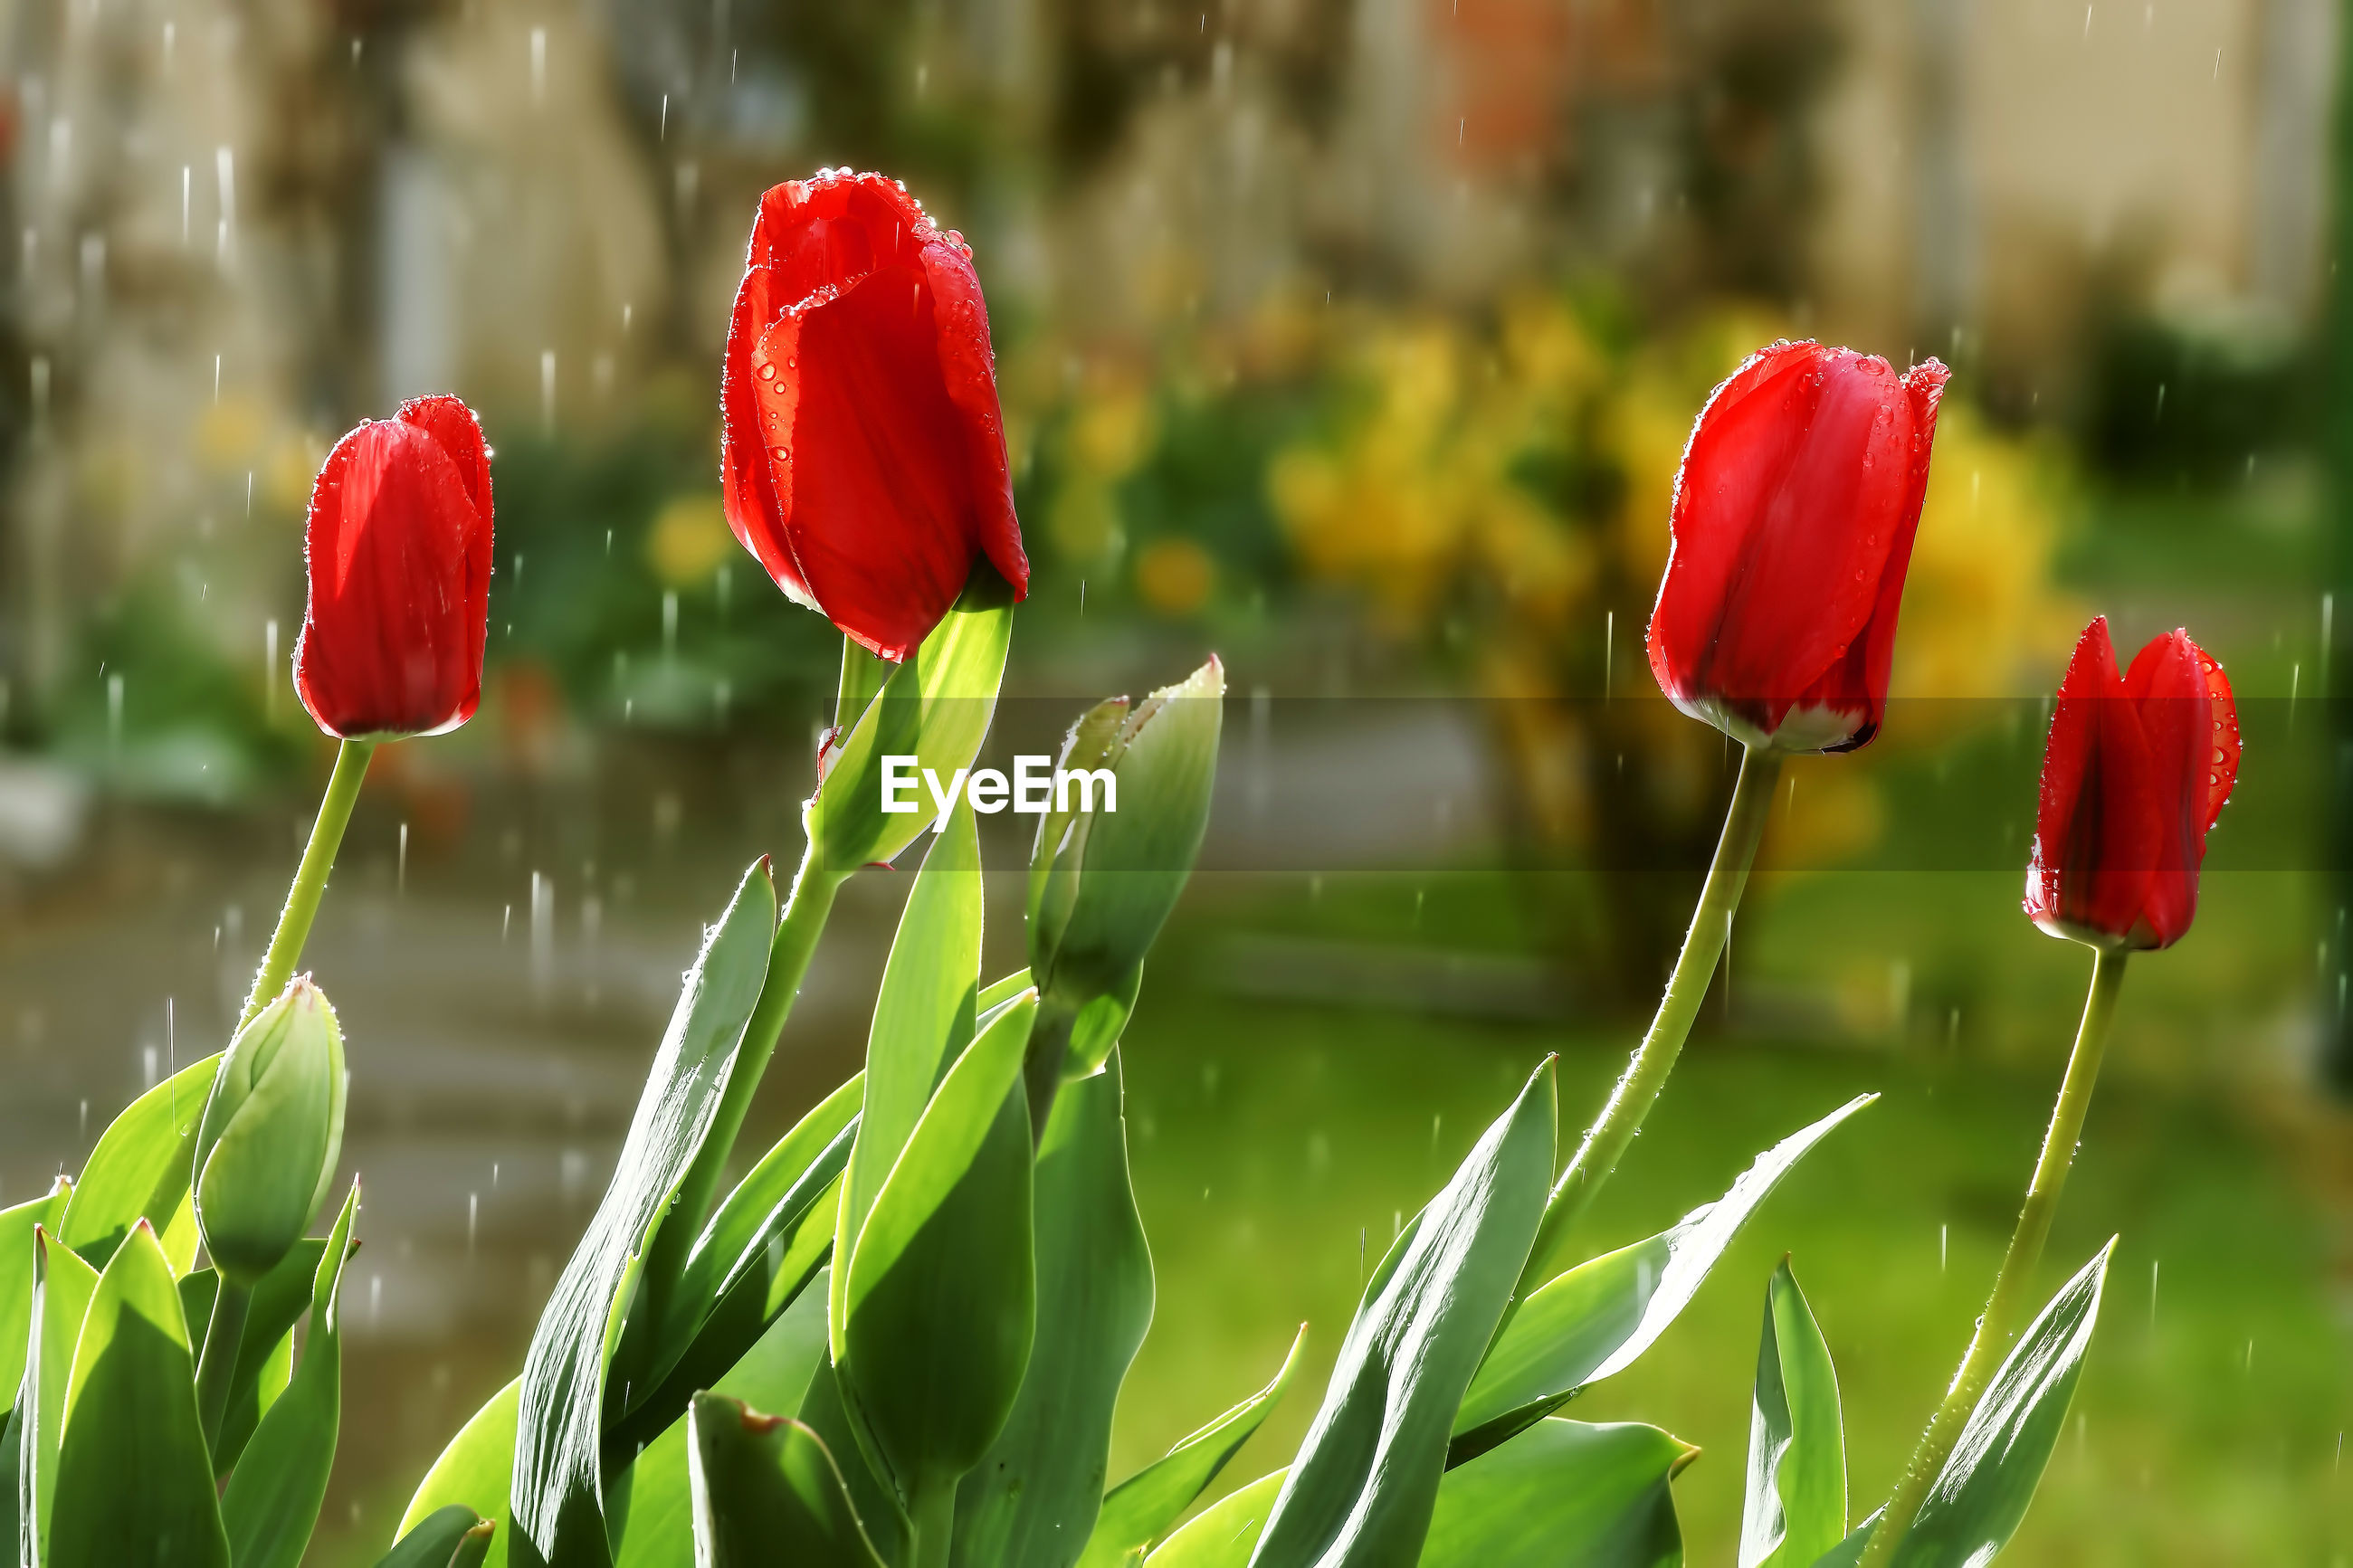 CLOSE-UP OF RED TULIPS ON LAND